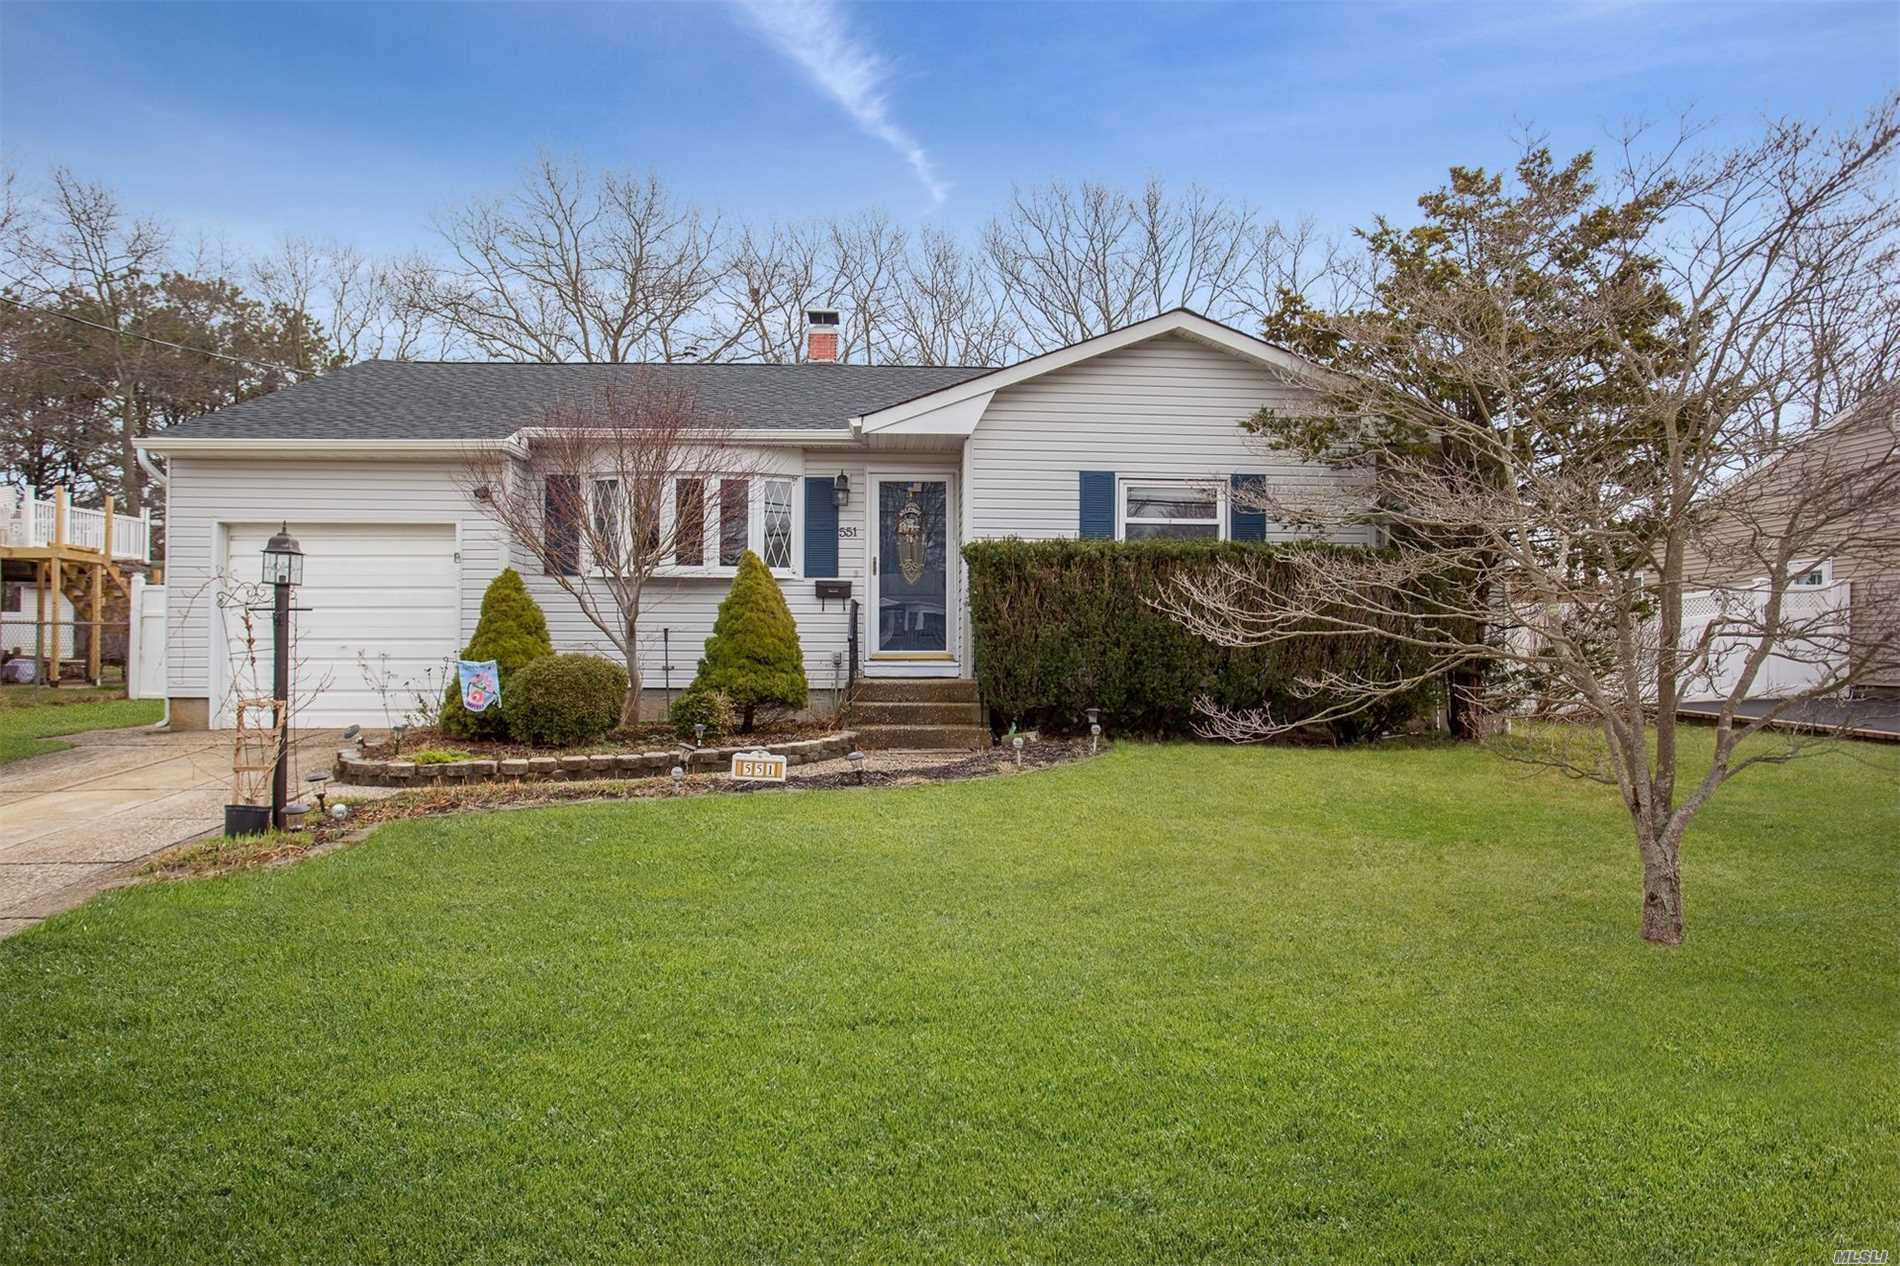 Don't Miss This Lovely Open Concept Bayport Ranch W/ Great Flow For Entertaining, Sunken Den, & Sliders Leading To Large Yard W/ Patio & Vegetable/Fruit Gardens. Full Basement Offers A Spacious, Comfortable, Finished Area, Laundry, & Plenty Of Storage. Garage Converted To 4th Bedroom W/ 1/2 Bath & Loft. Add'l Features Include A Wood Pellet Stove, Central Air, 1 Yr Roof, Gleaming Pergo And Hdwd Floors, And Newer Appliances, All Within Coveted Bayport/Blue Point Schools. Star Rebate $1, 388.75